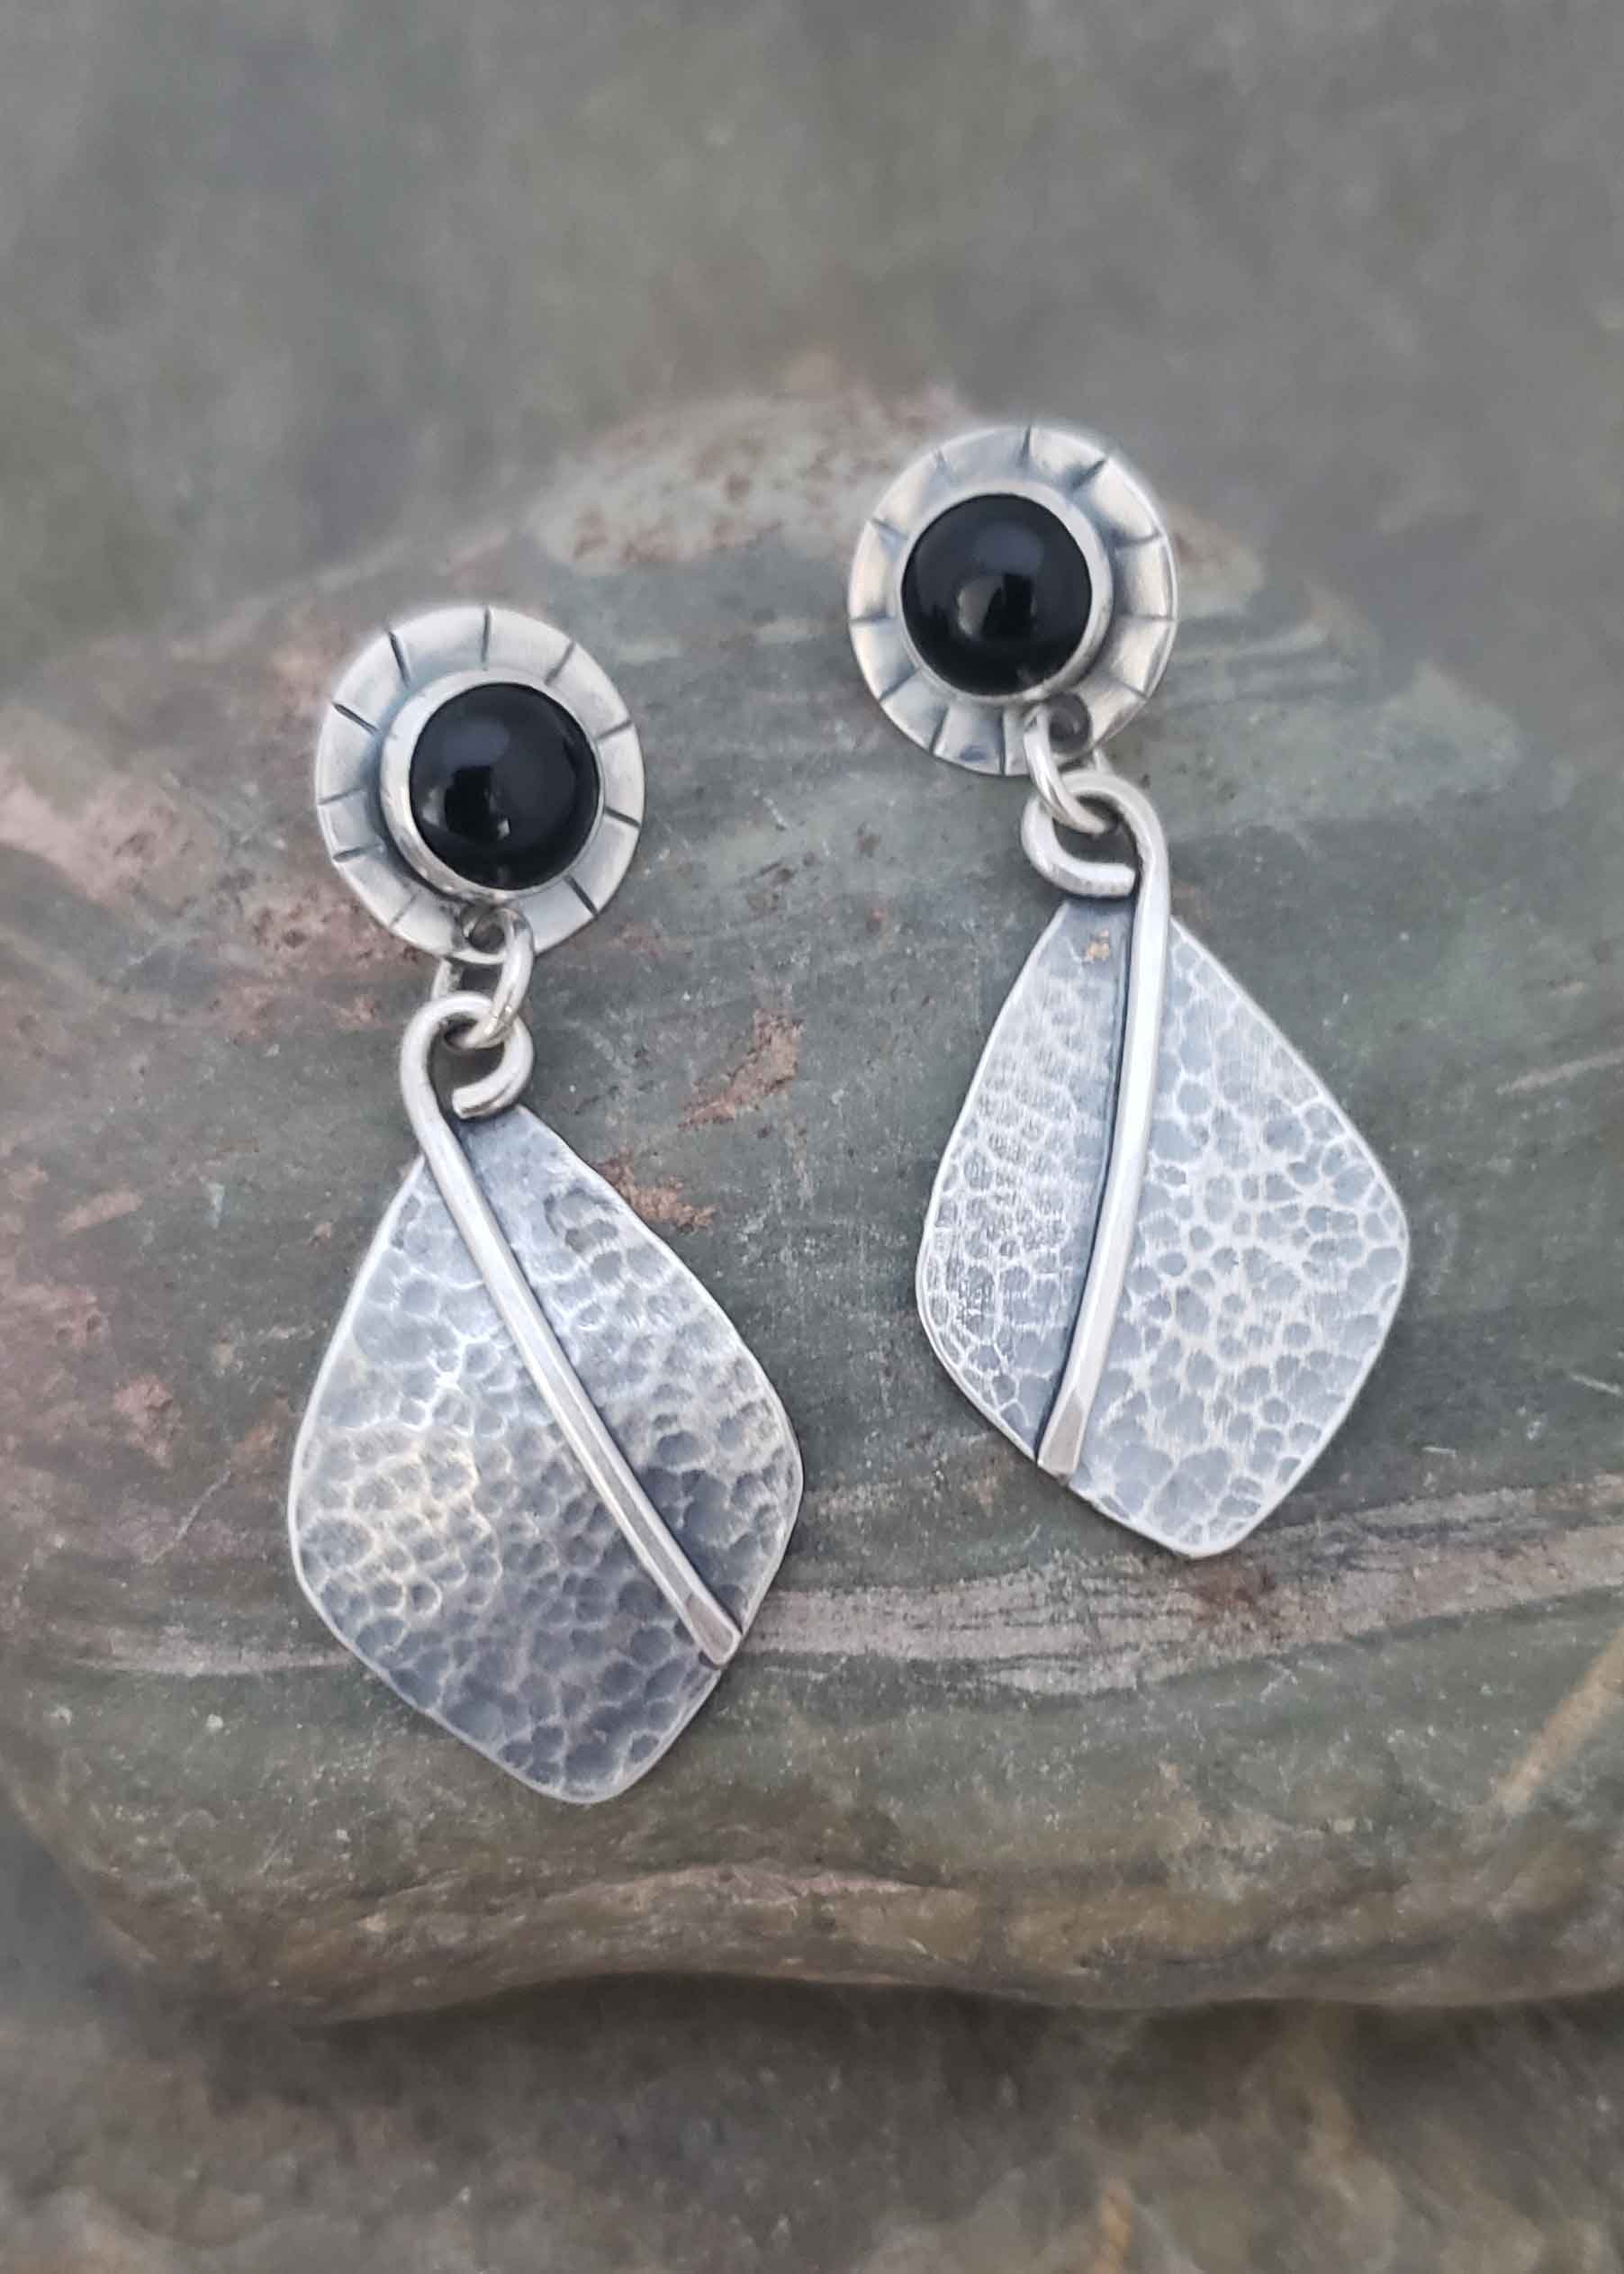 New Moon - silver and black onyx post earrings.